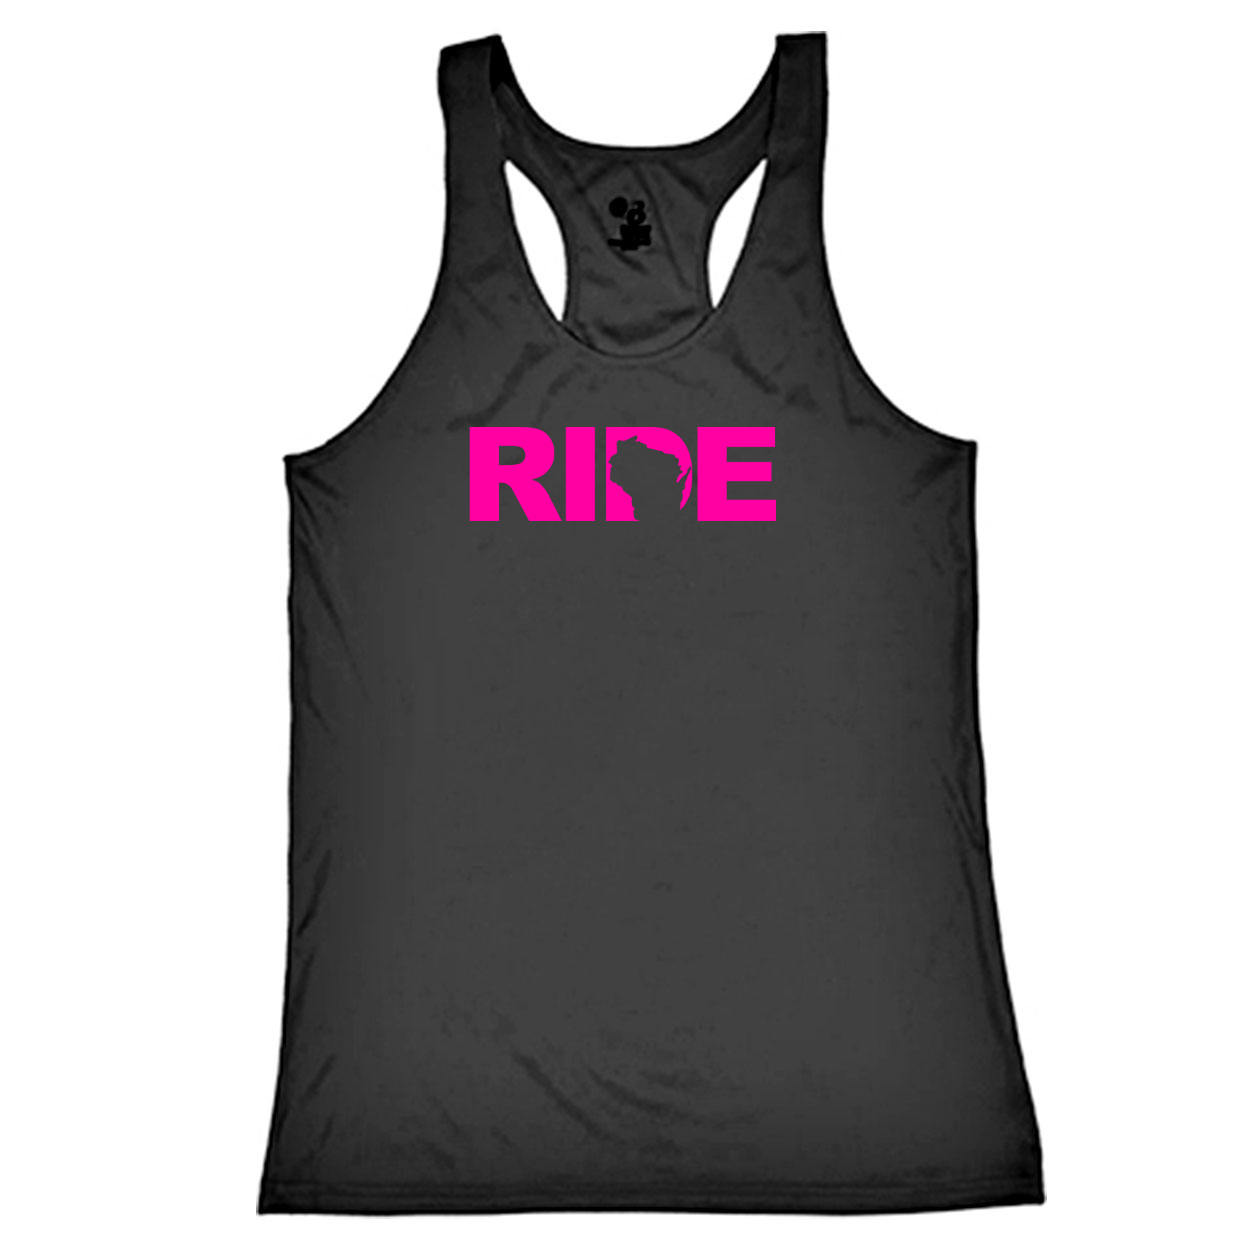 Ride Wisconsin Classic Youth Girls Performance Racerback Tank Top Black (Pink Logo)